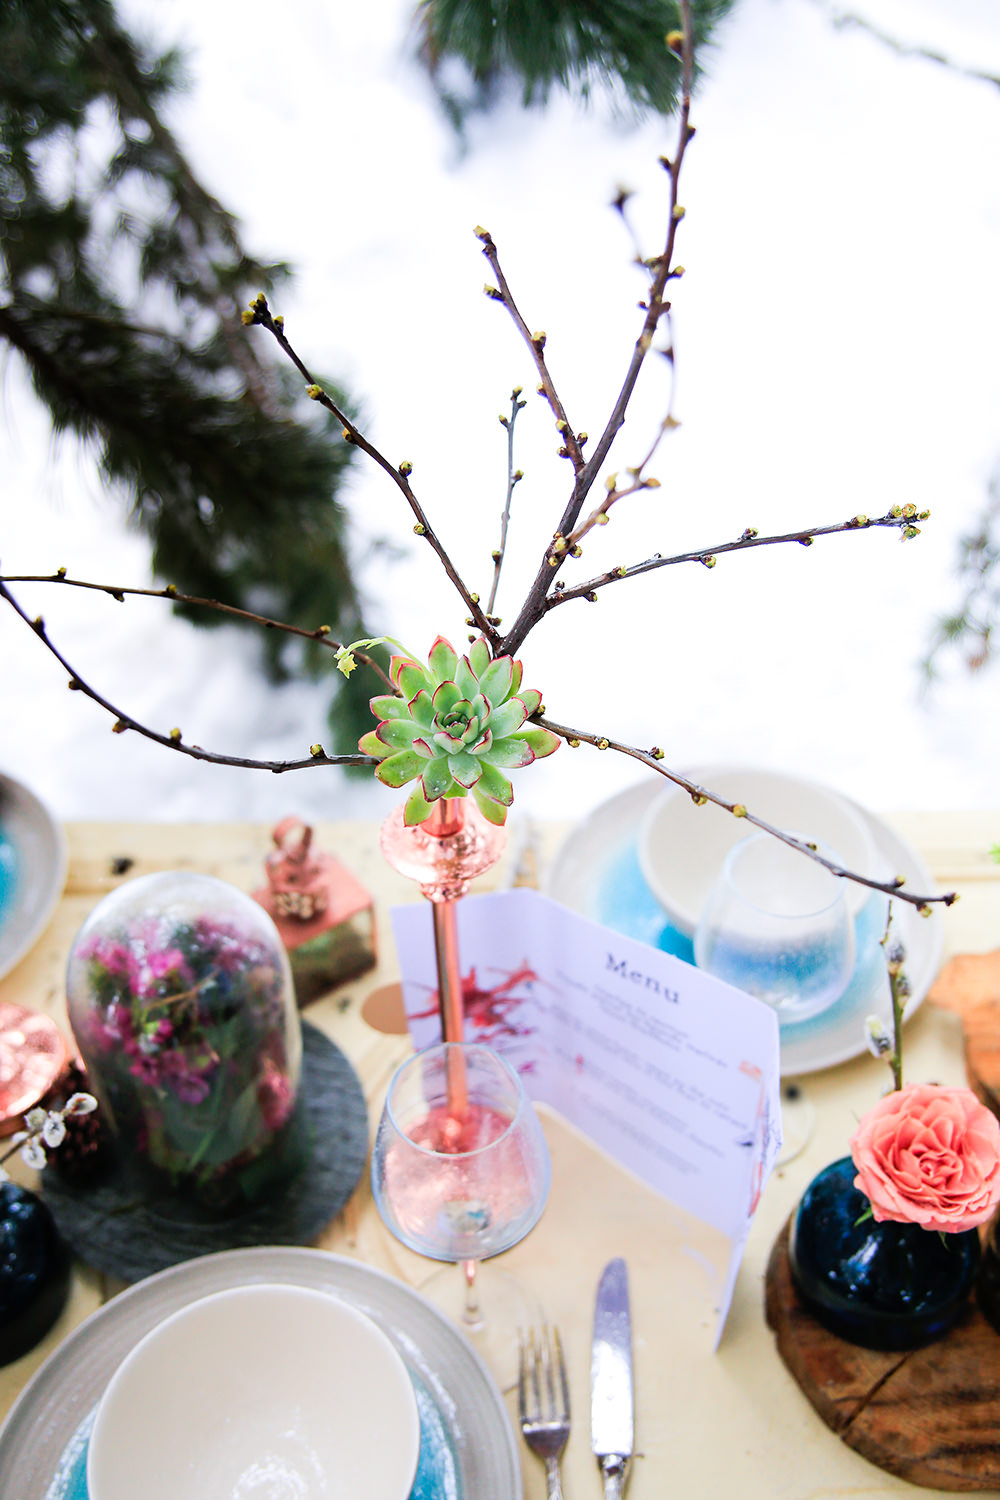 Winter Wedding Ideas Inspiration From The Pyreenes France